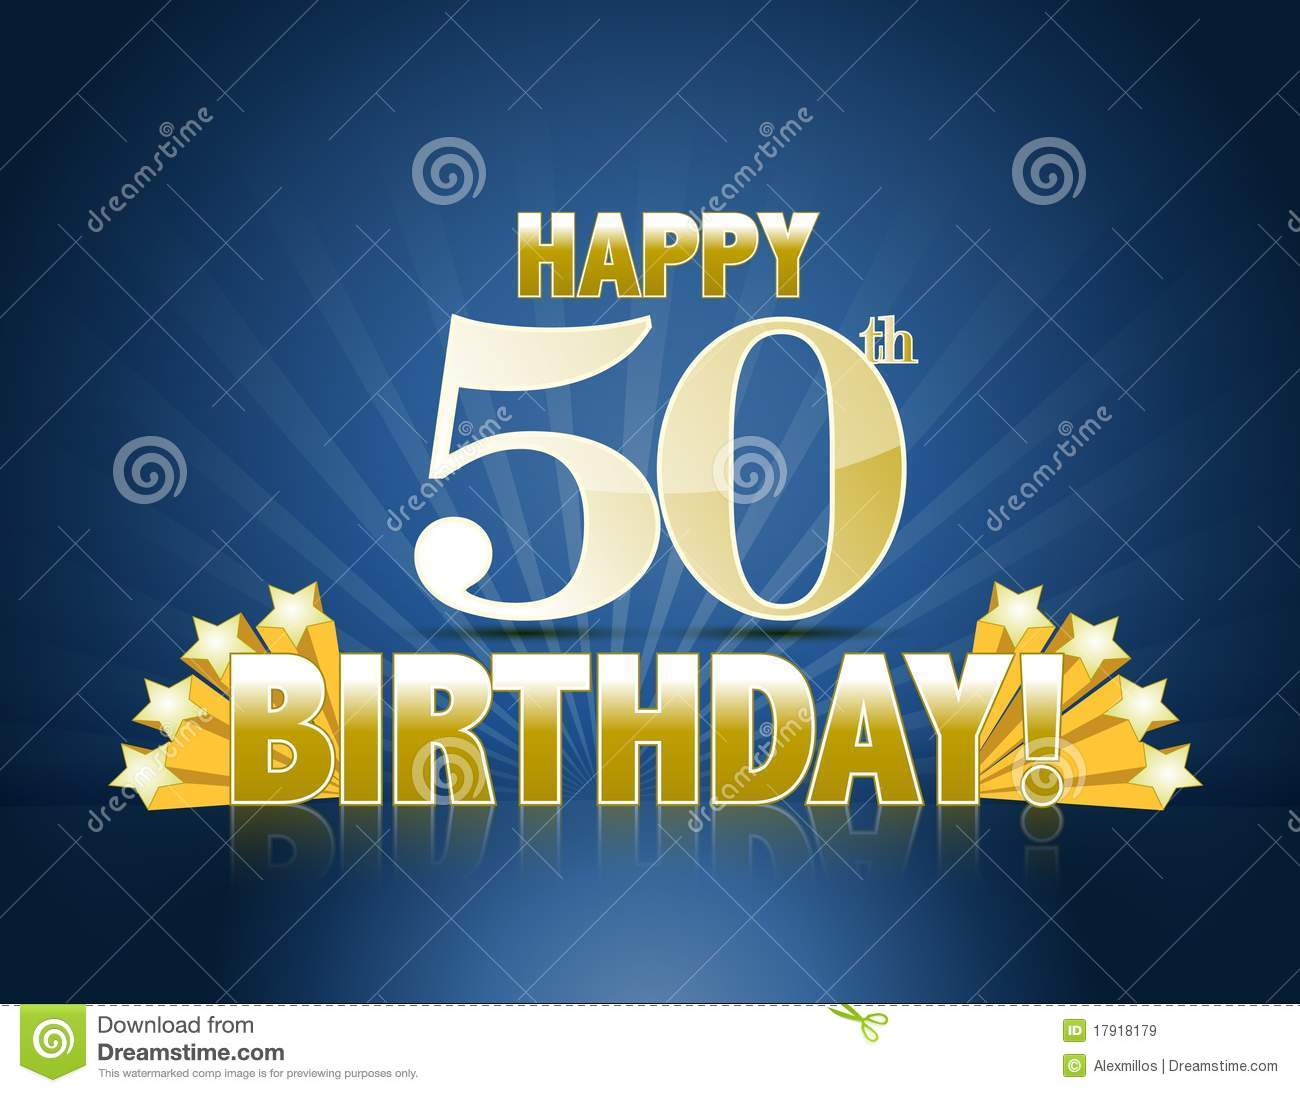 Happy 50th Birthday Royalty Free Stock Images - Image: 17918179